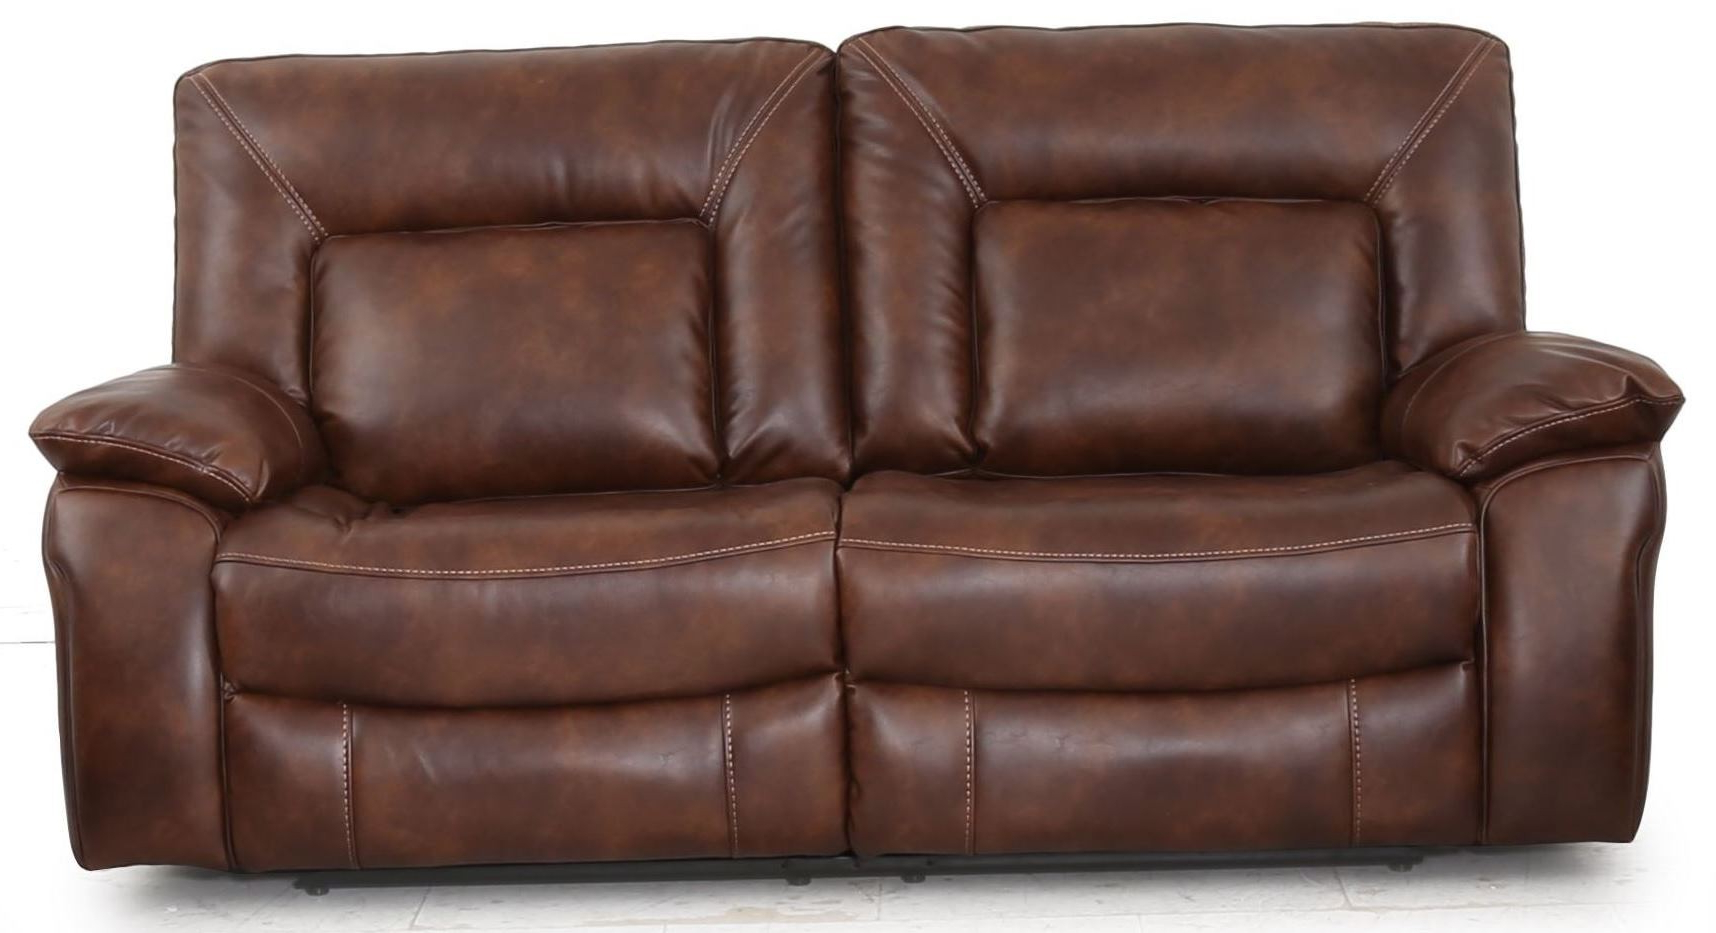 Dual Power Reclining Sofas Within Most Up To Date Linus Pecan Dual Power Reclining Sofa, Mlin 832p Pec (View 9 of 20)